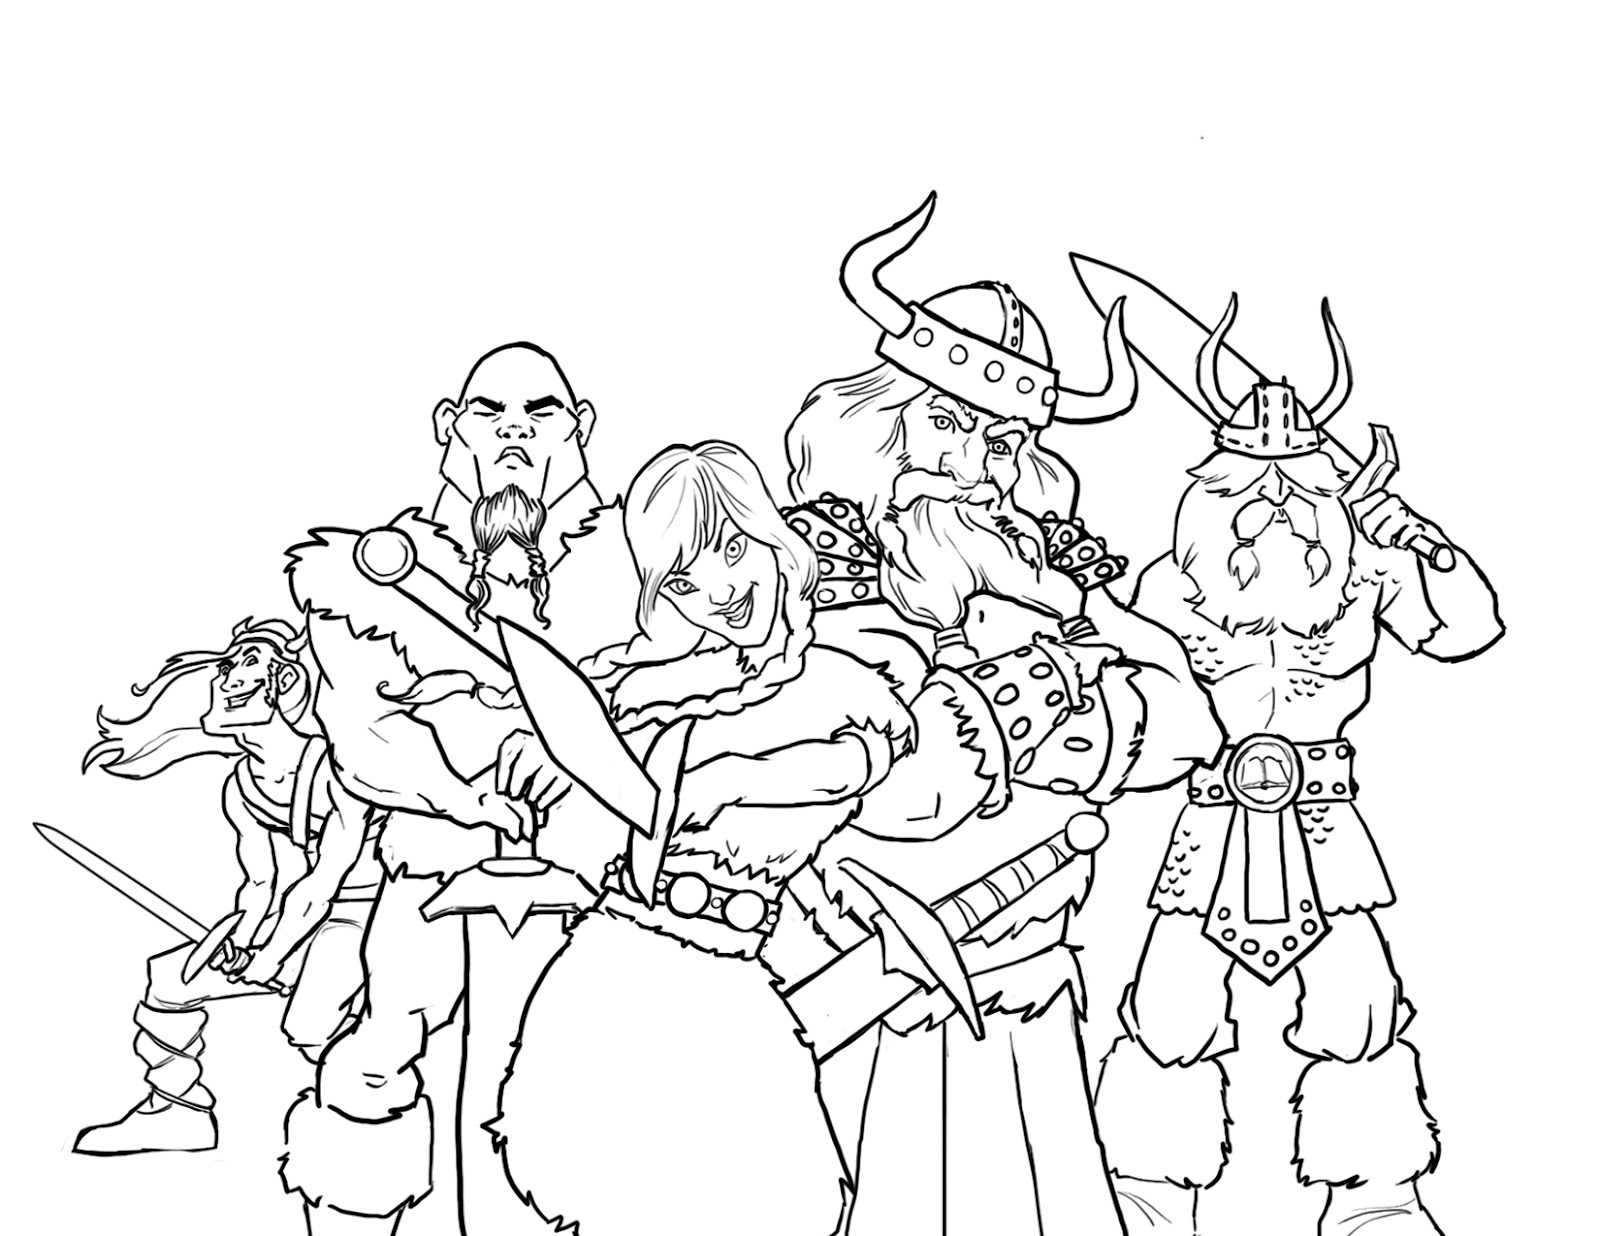 viking colouring pages viking coloring pages to download and print for free viking pages colouring